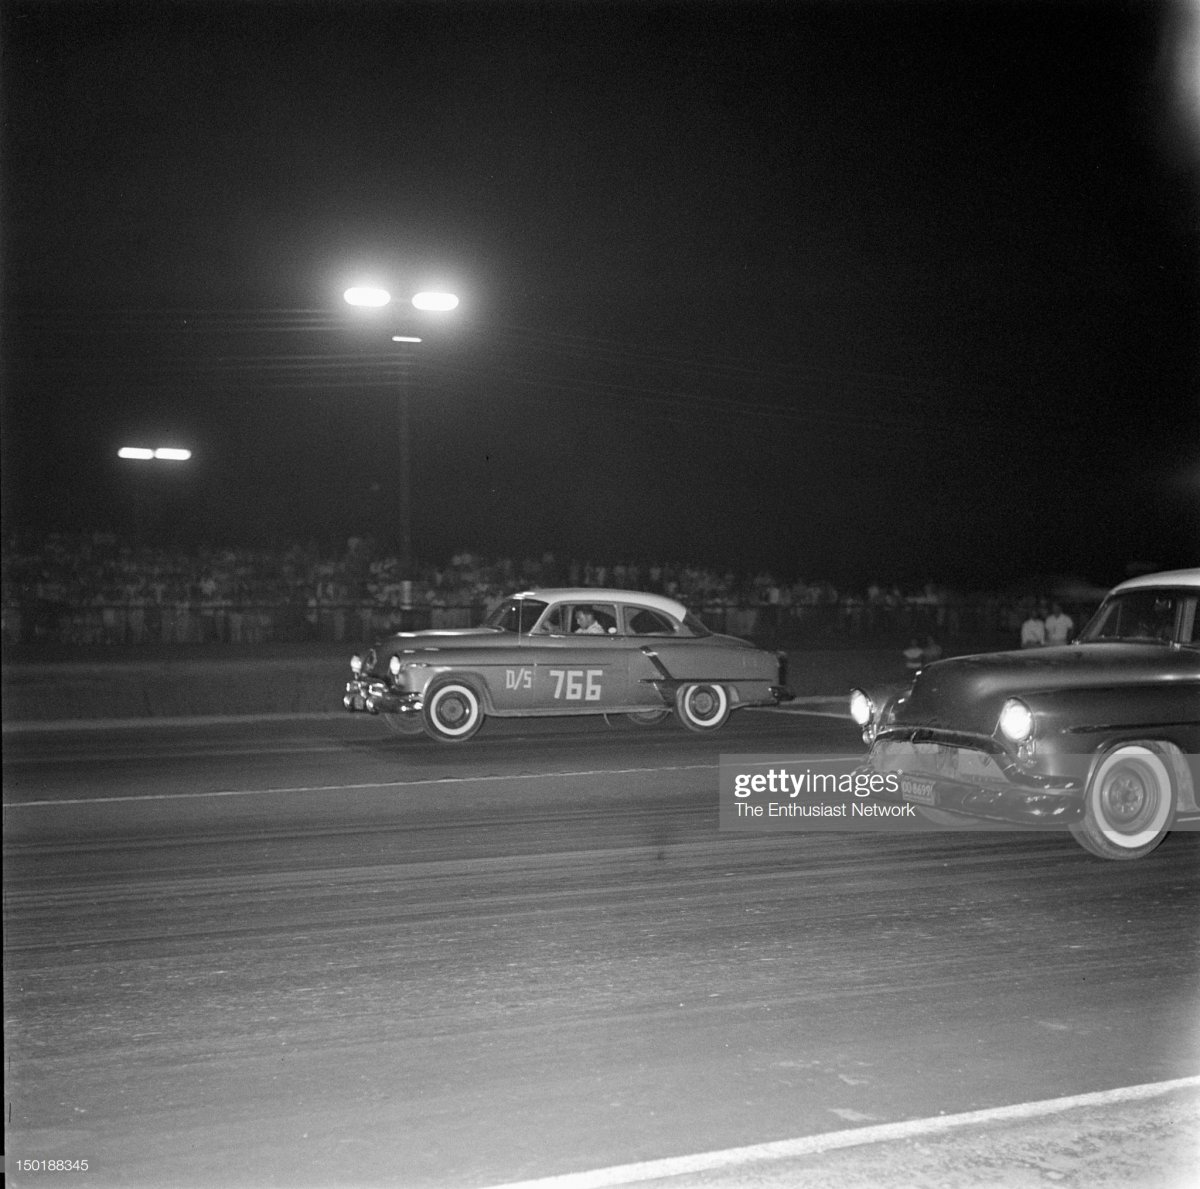 70  1959 Santa Ana Drag Races At Night.jpg